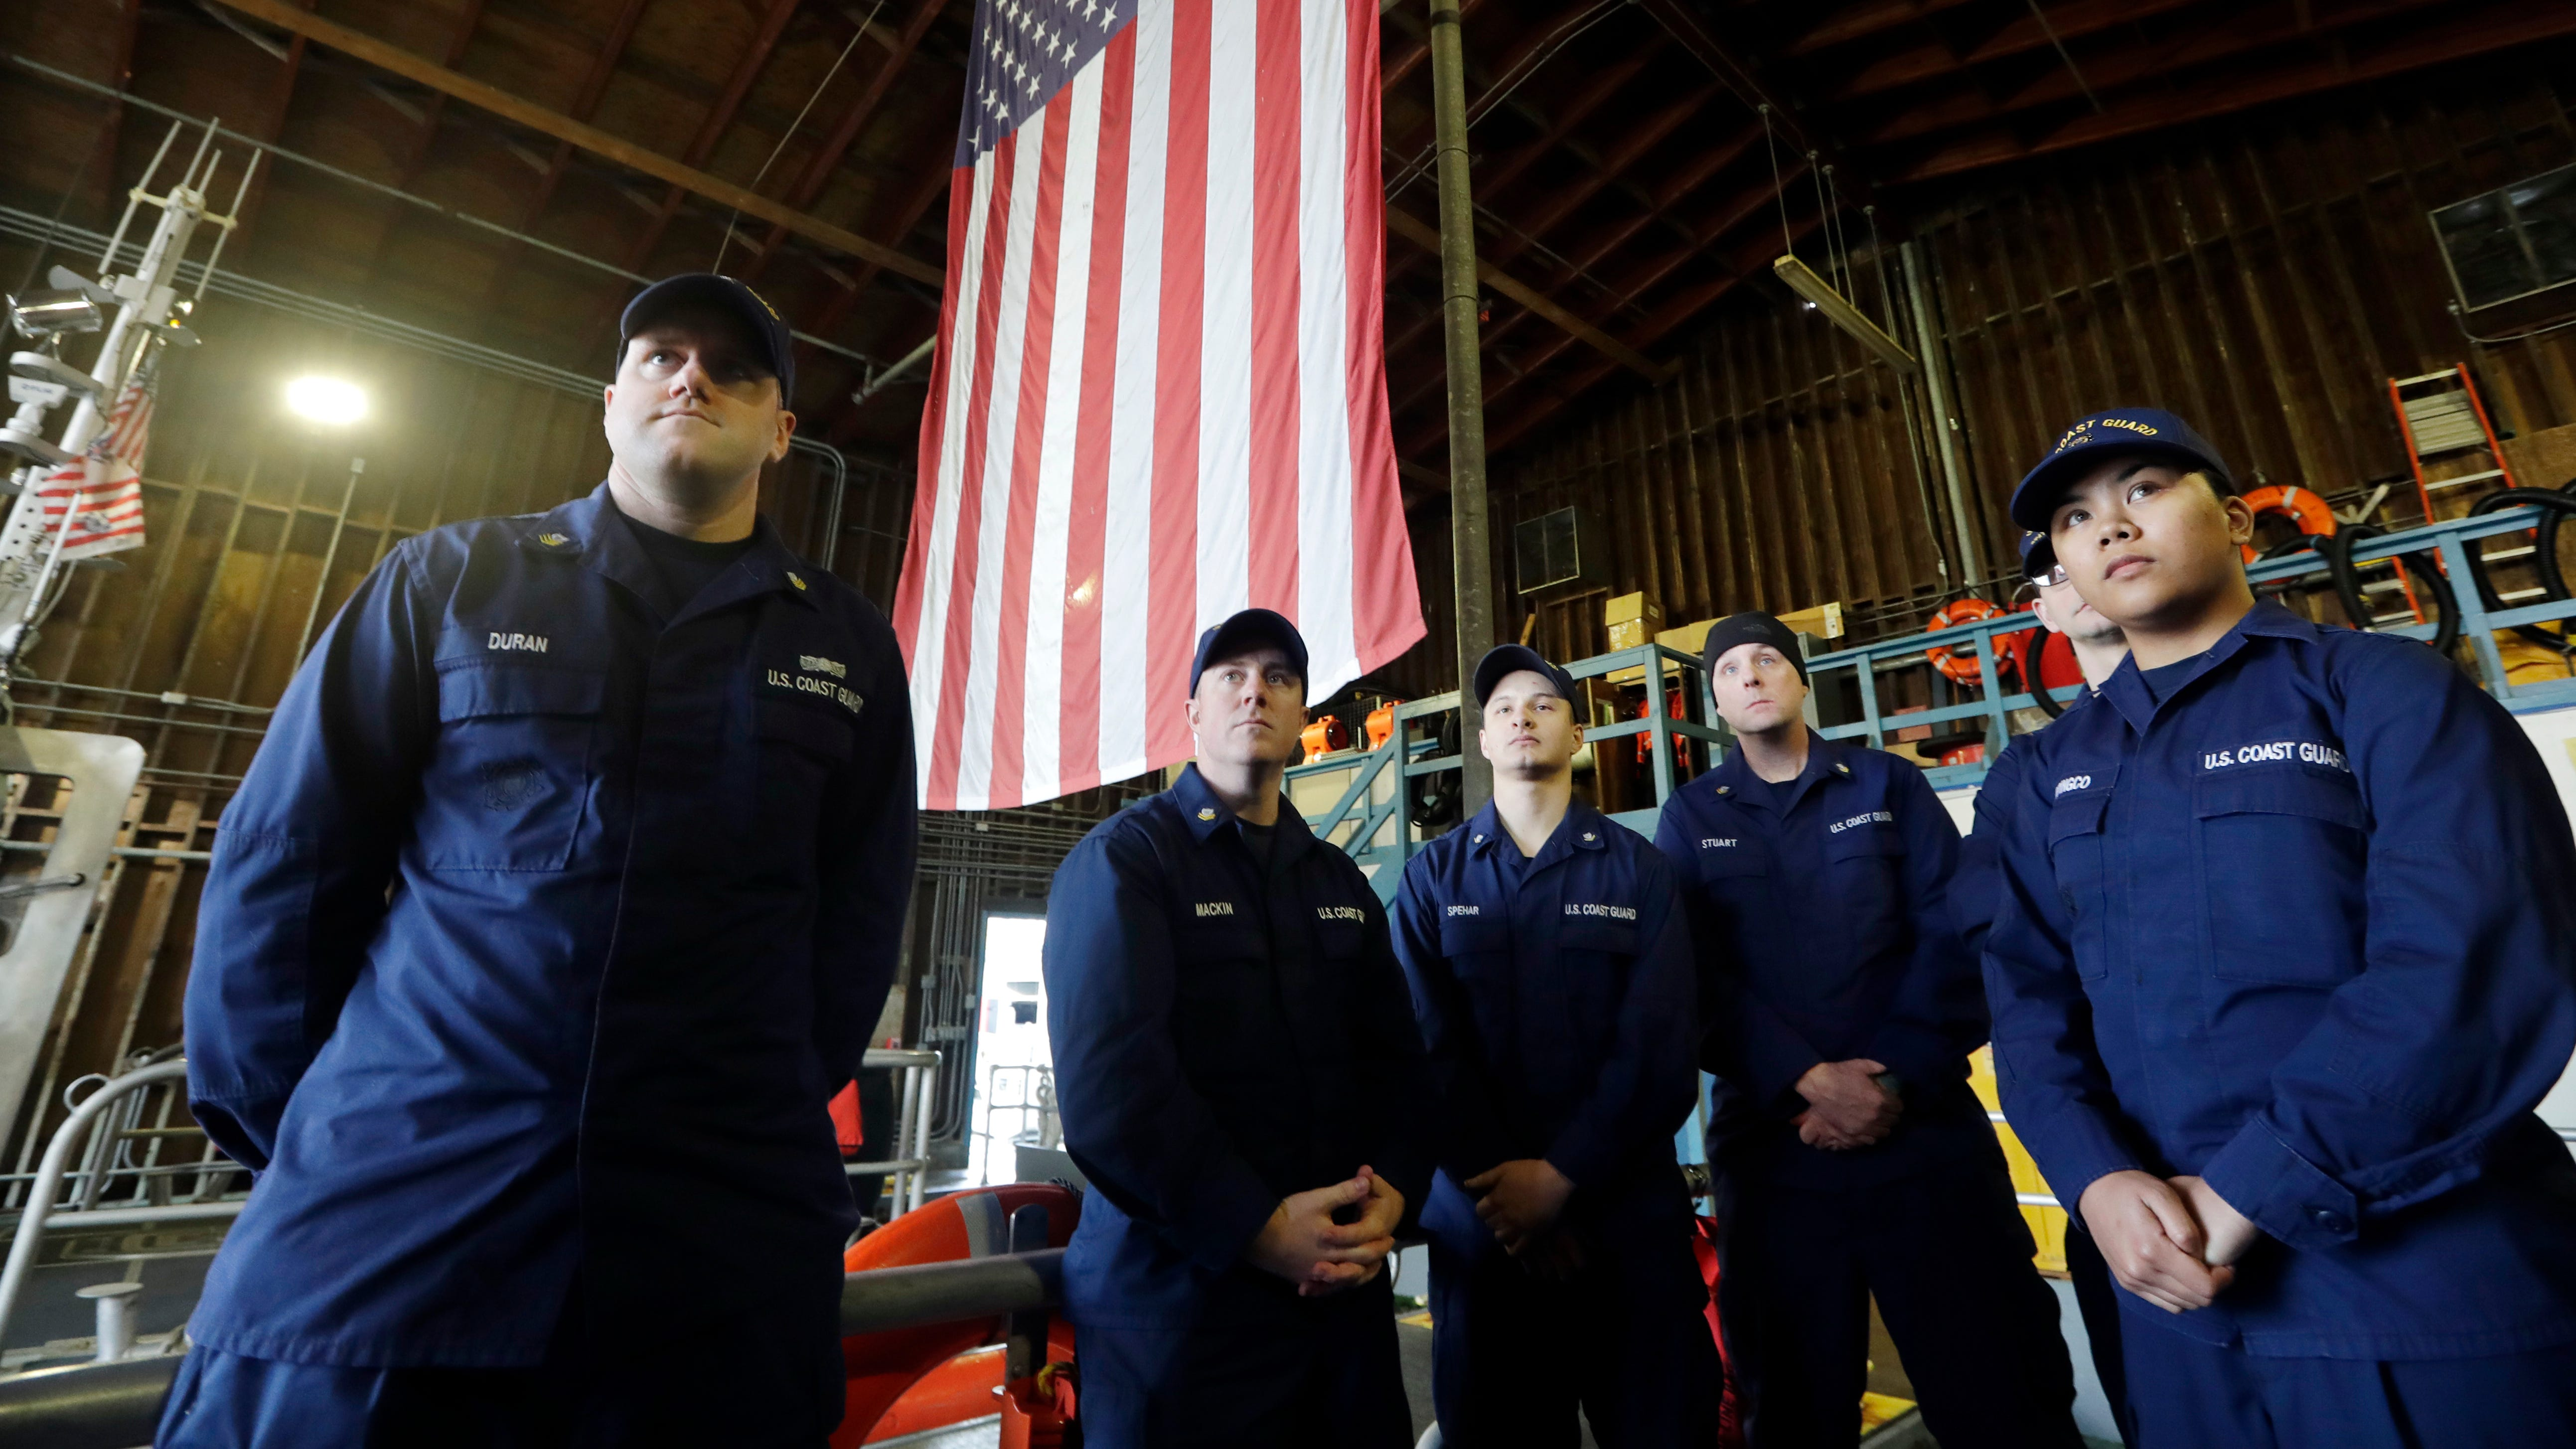 U.S. Coast Guardsmen and women stand on a 45-foot response boat as they listen to their lieutenant during their shift at Sector Puget Sound base in Seattle.